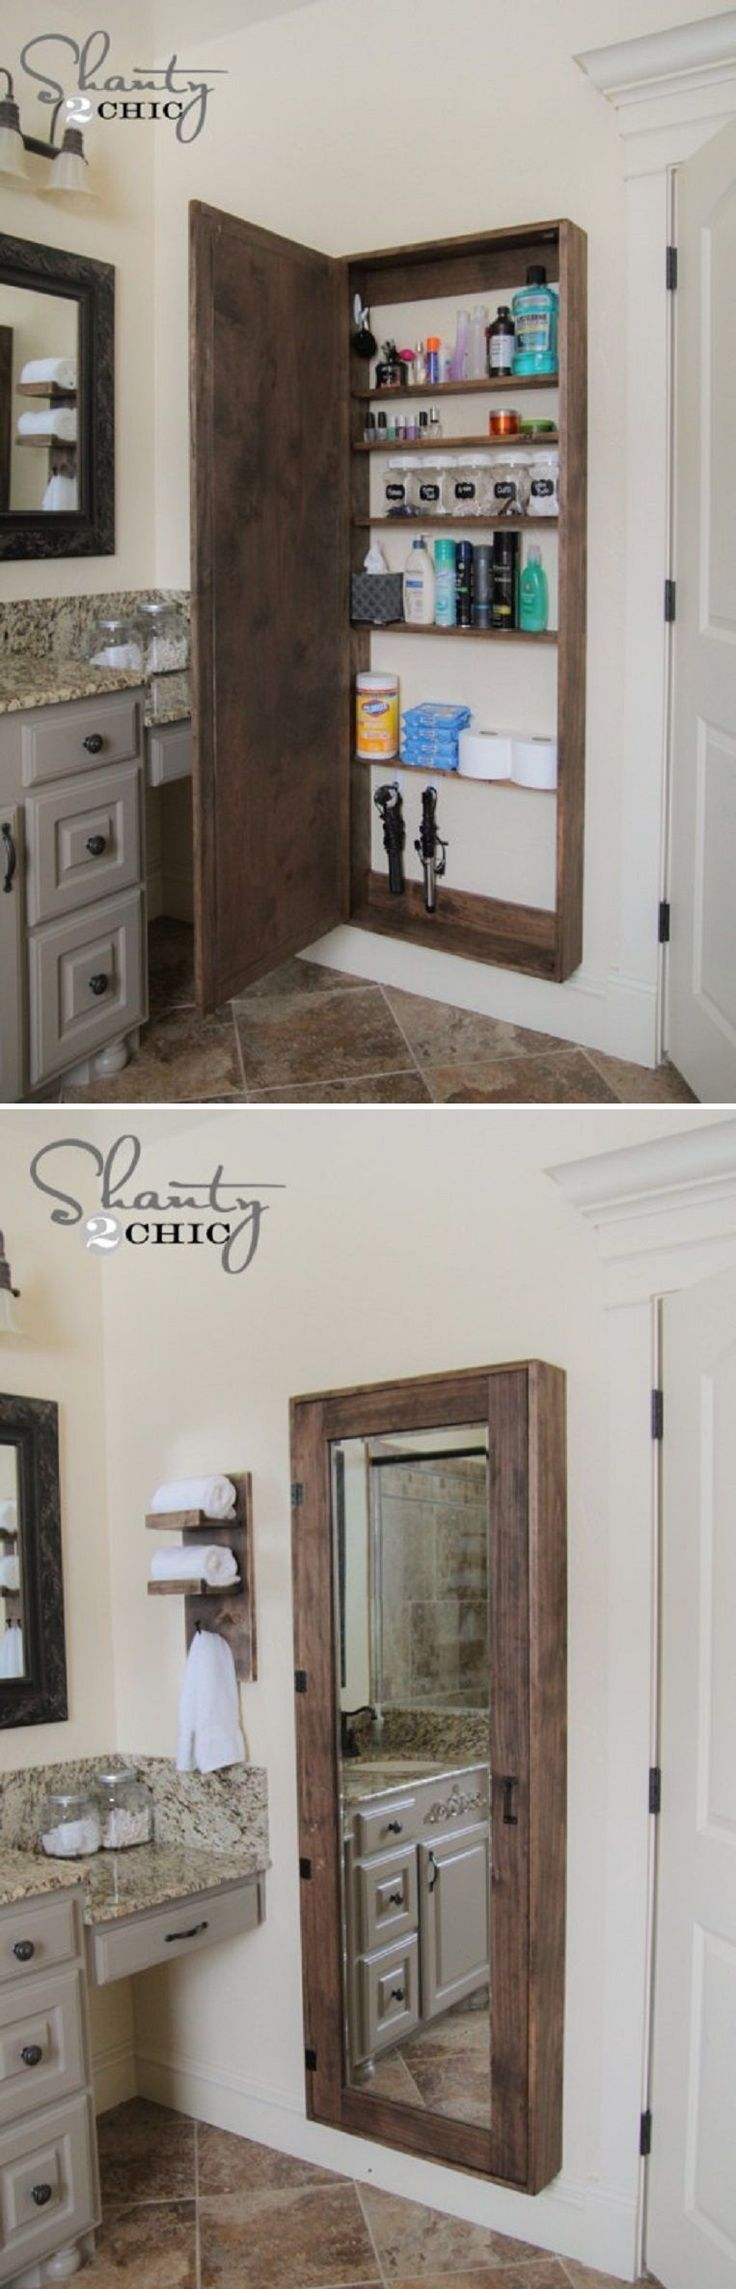 Best 10 Small Bathroom Storage Ideas On Pinterest Bathroom Storage Diy Ba